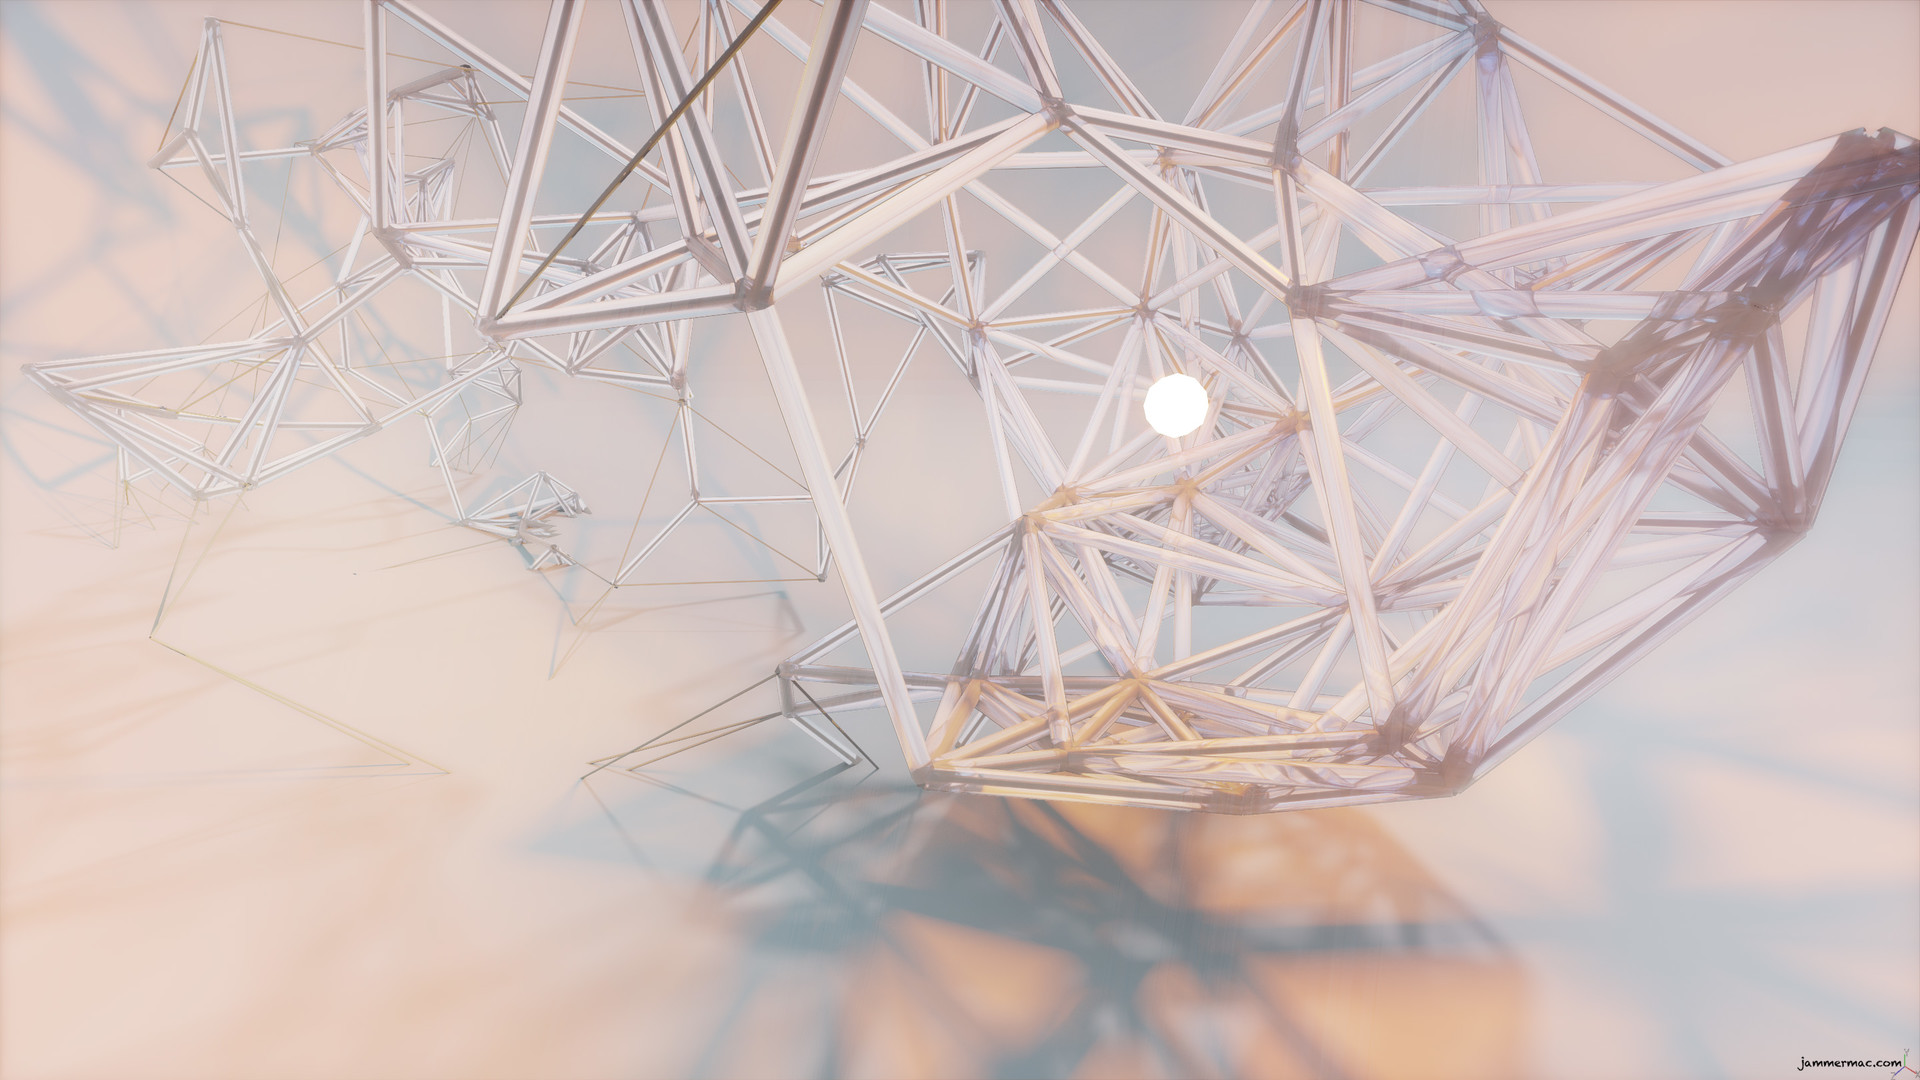 jamie robertson - stage sets, retail space, space frames, facades ...